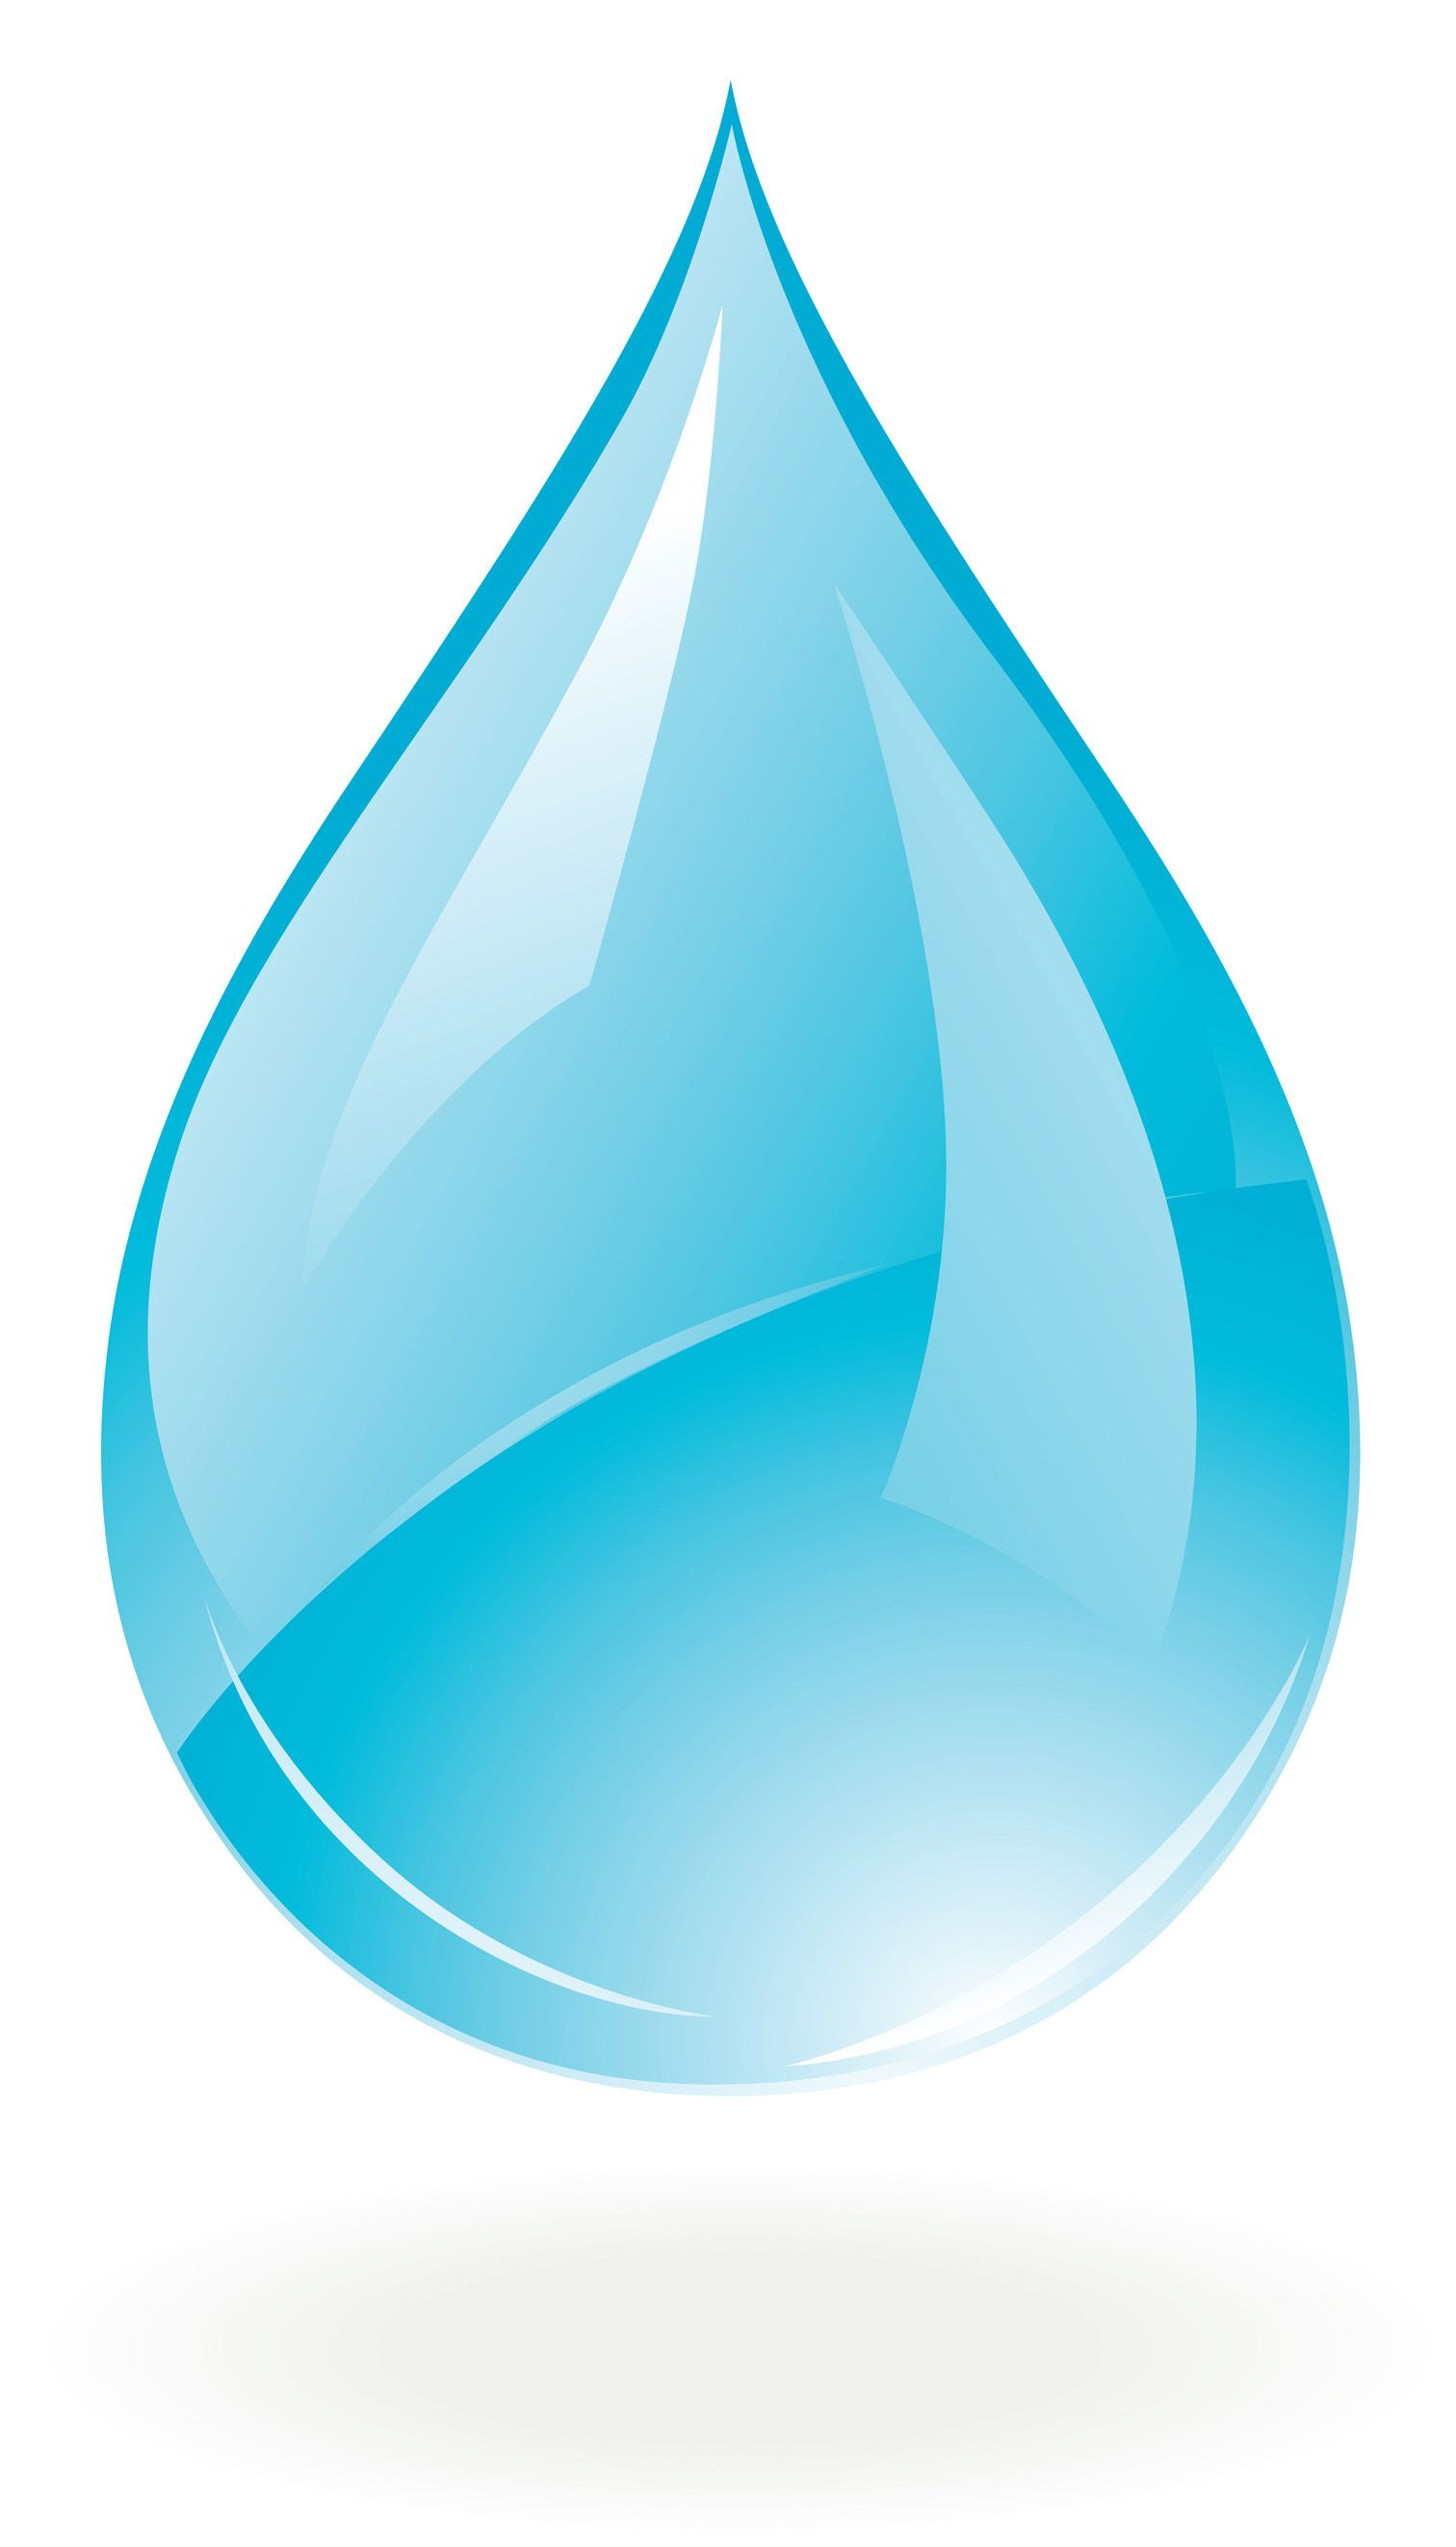 Water Drop Psd Clipart